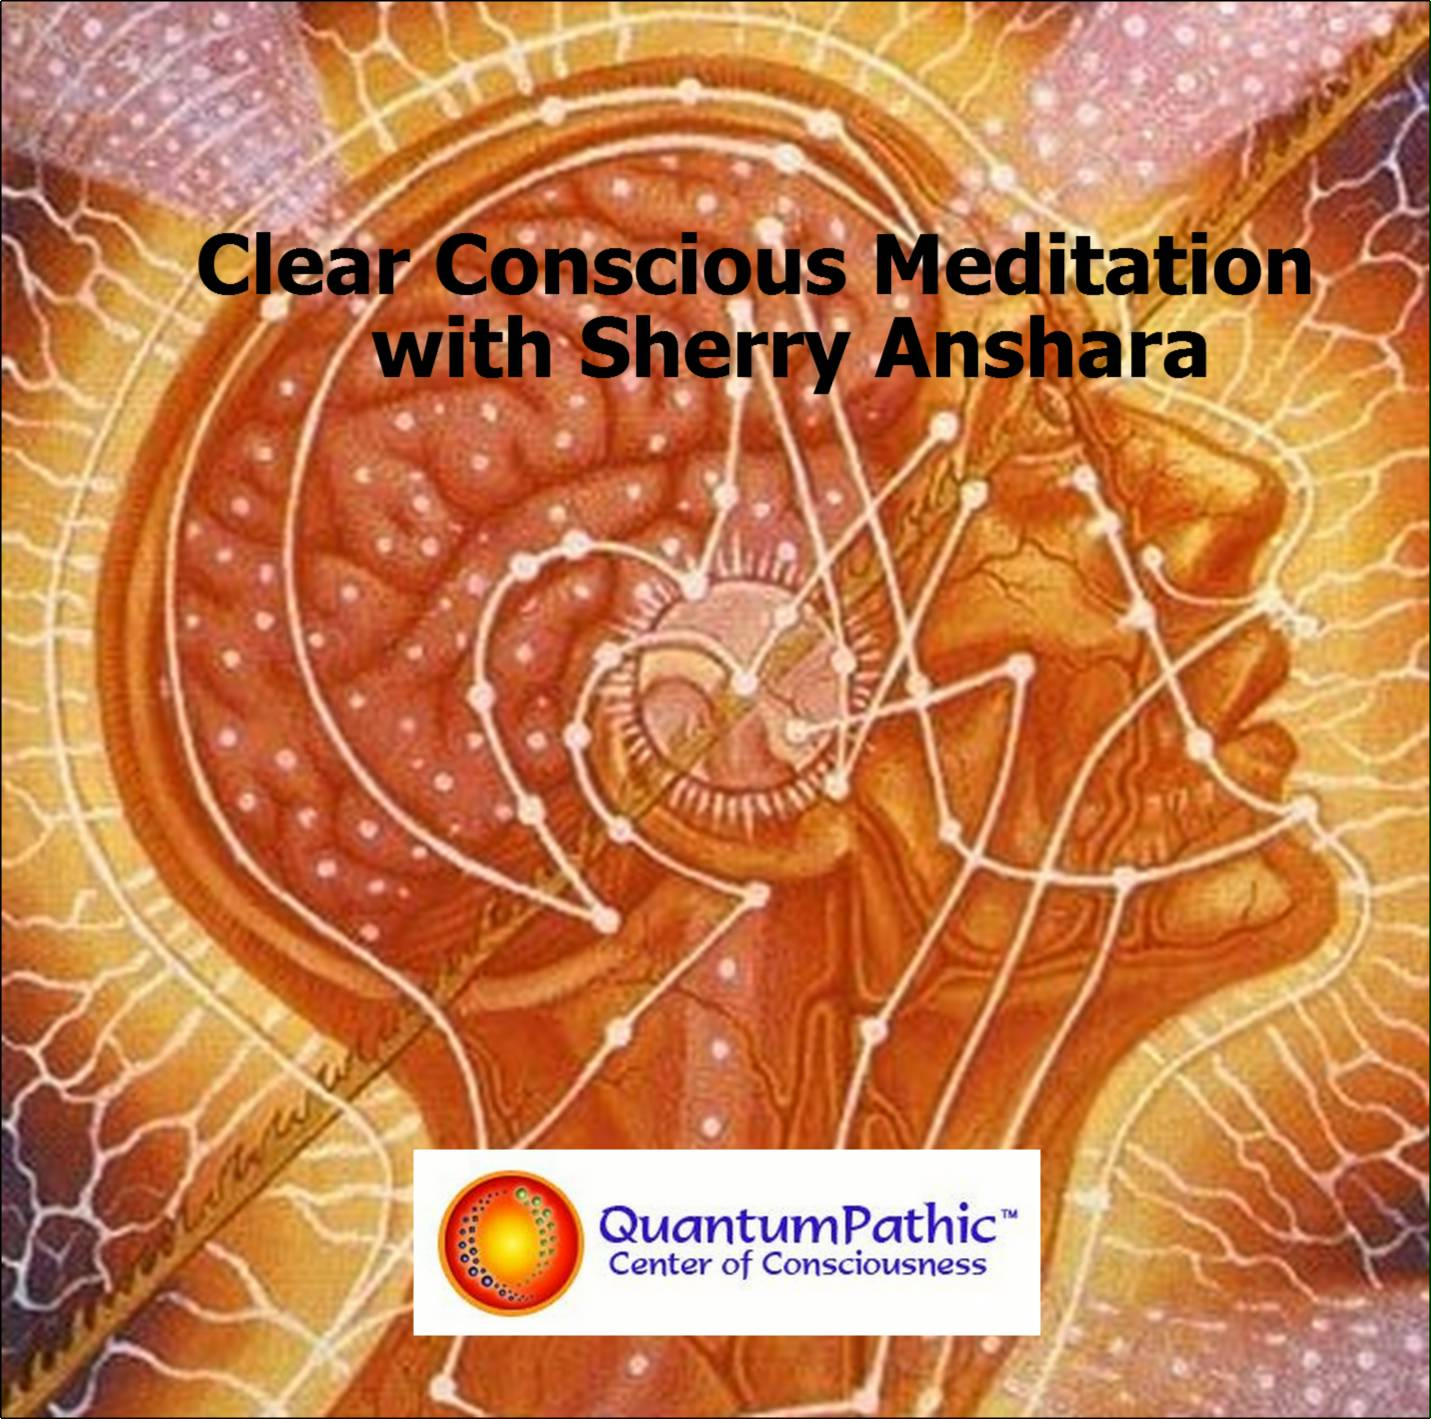 Clear Conscious Meditation with Sherry Anshara